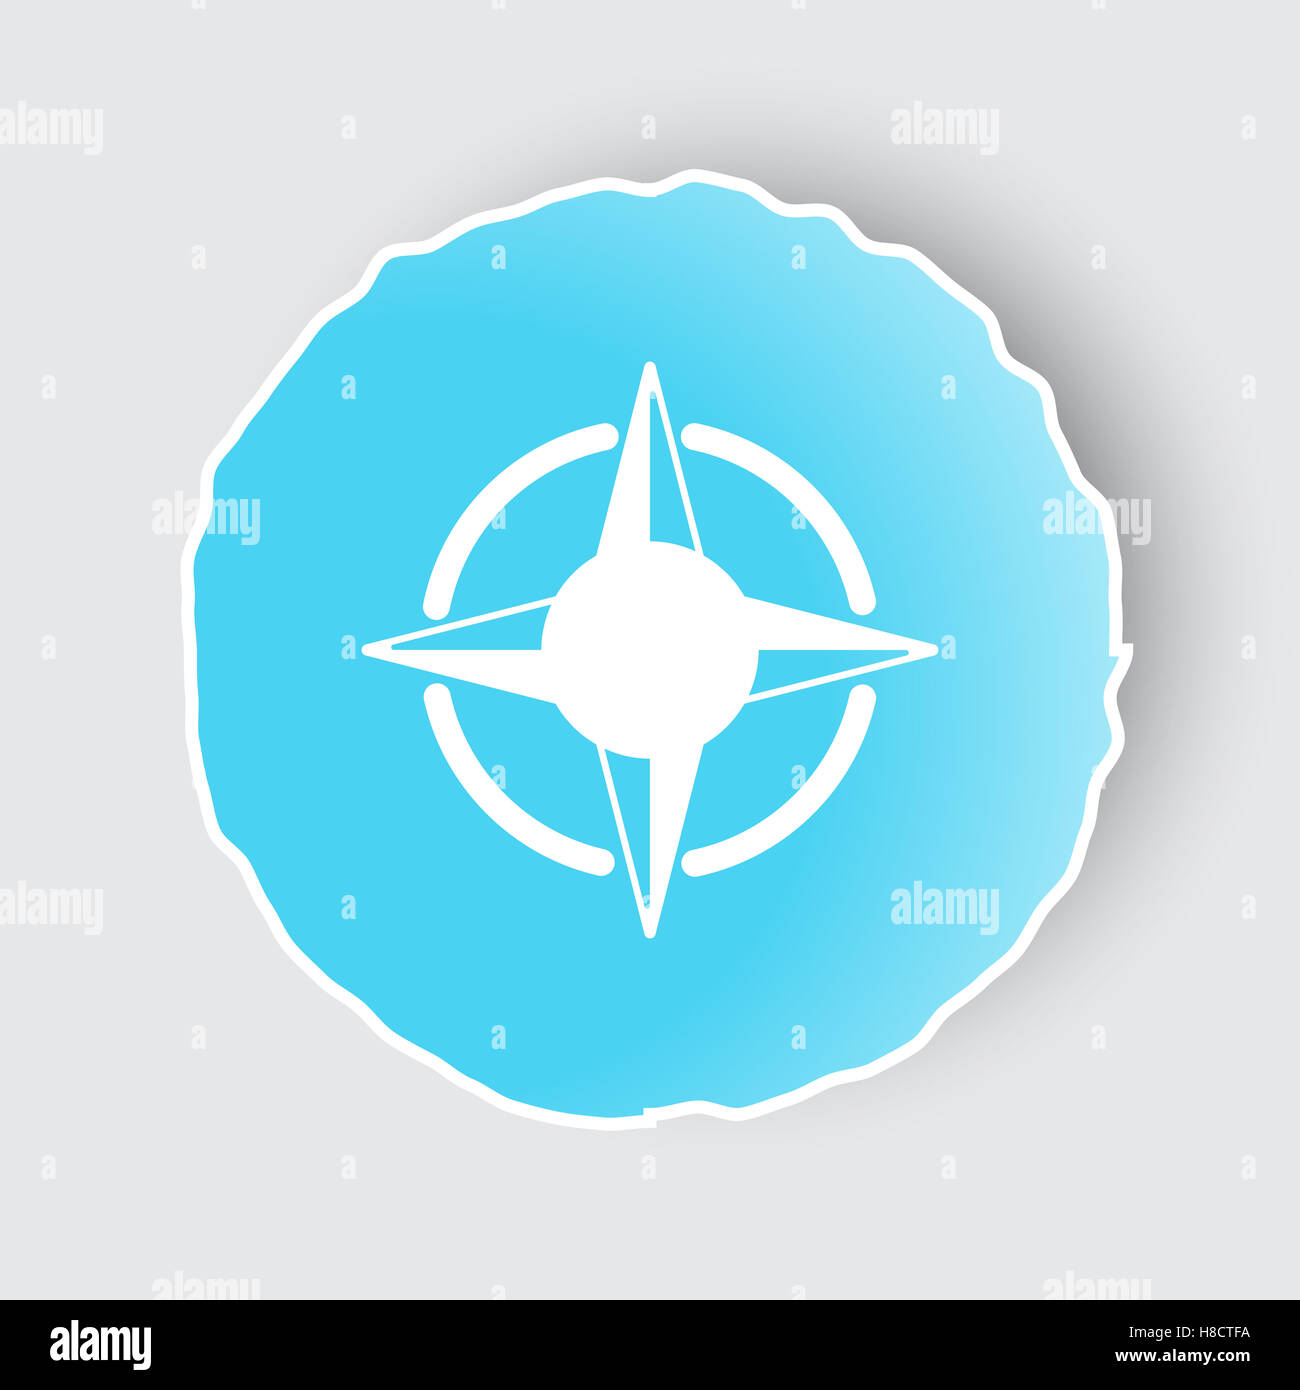 Blue app button with compass rose icon on white stock photo blue app button with compass rose icon on white ccuart Images